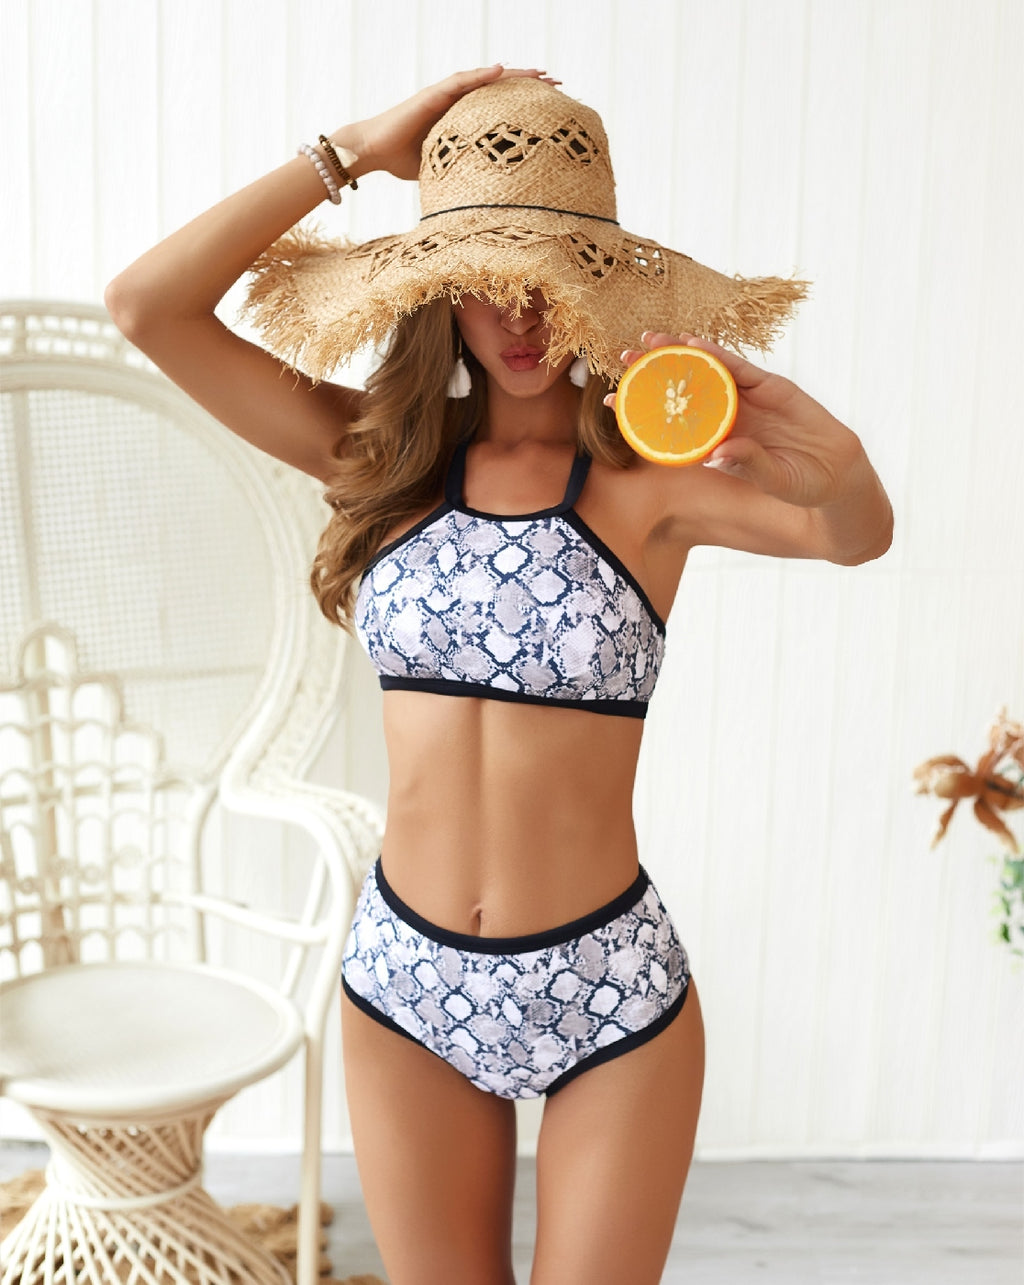 Snakeskin Two Piece Bikini (Pieces Sold Separately)